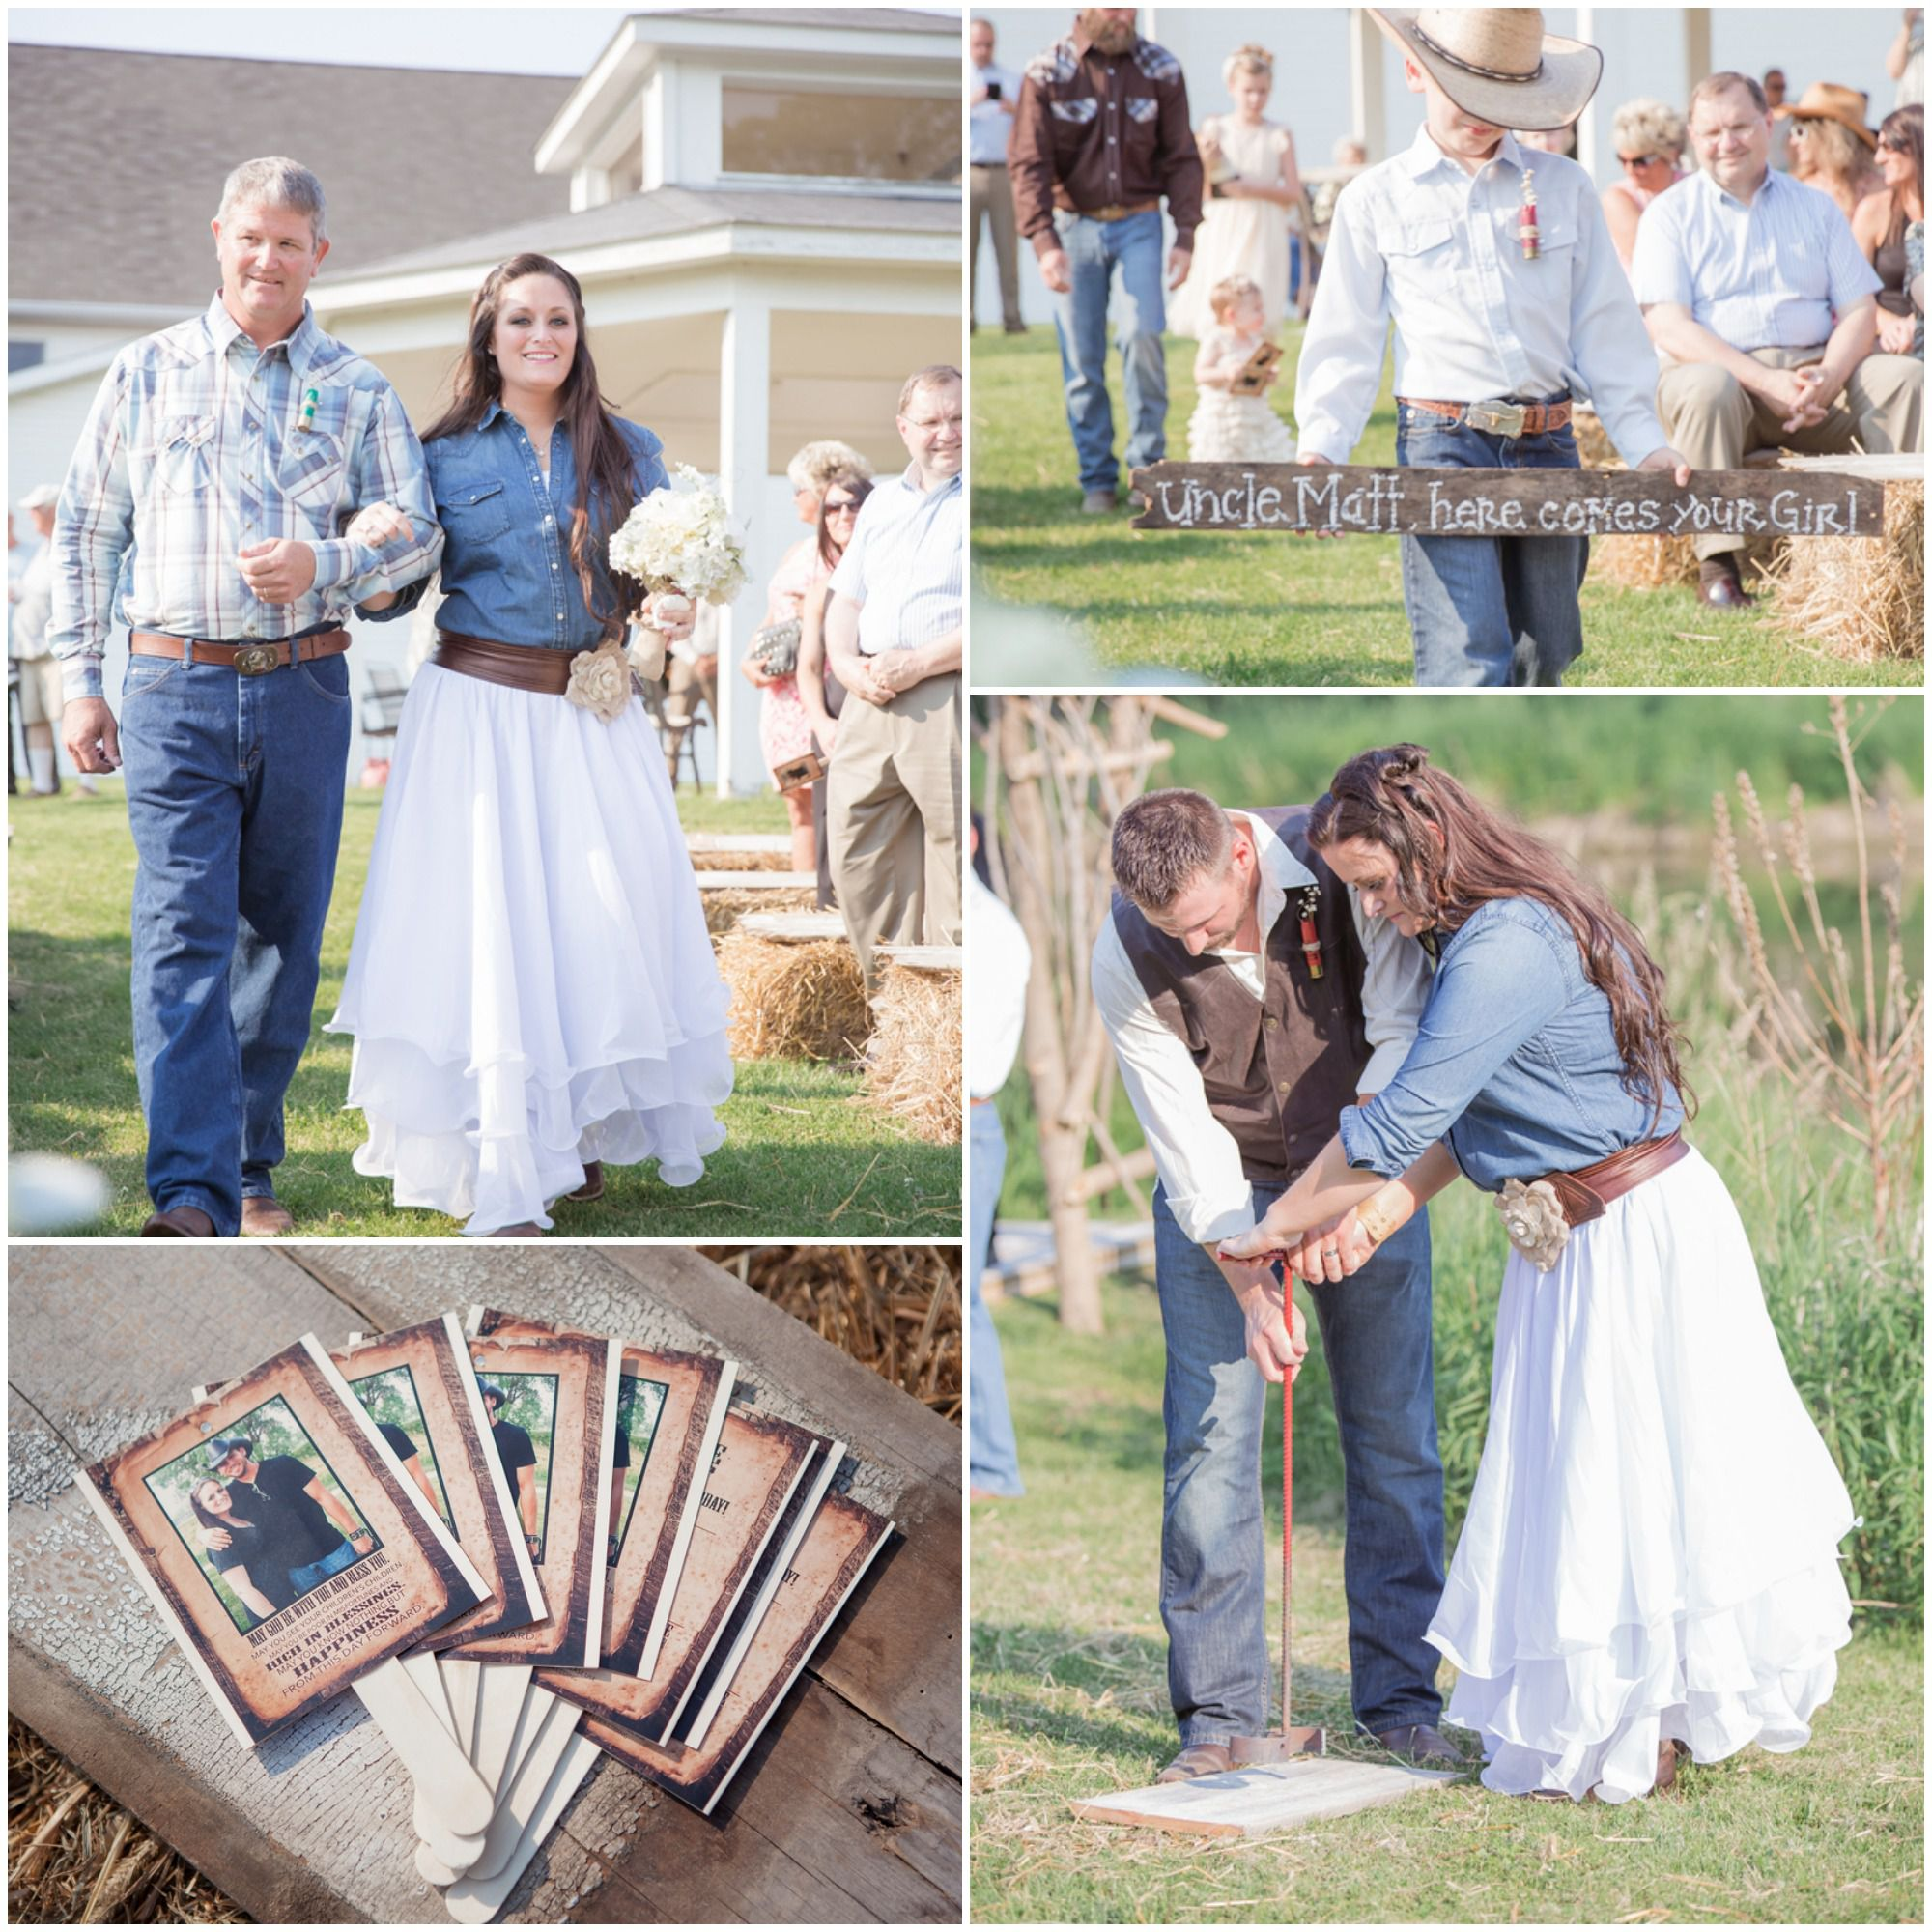 Western Style Wedding in Denim and Jeans Rustic Wedding Chic